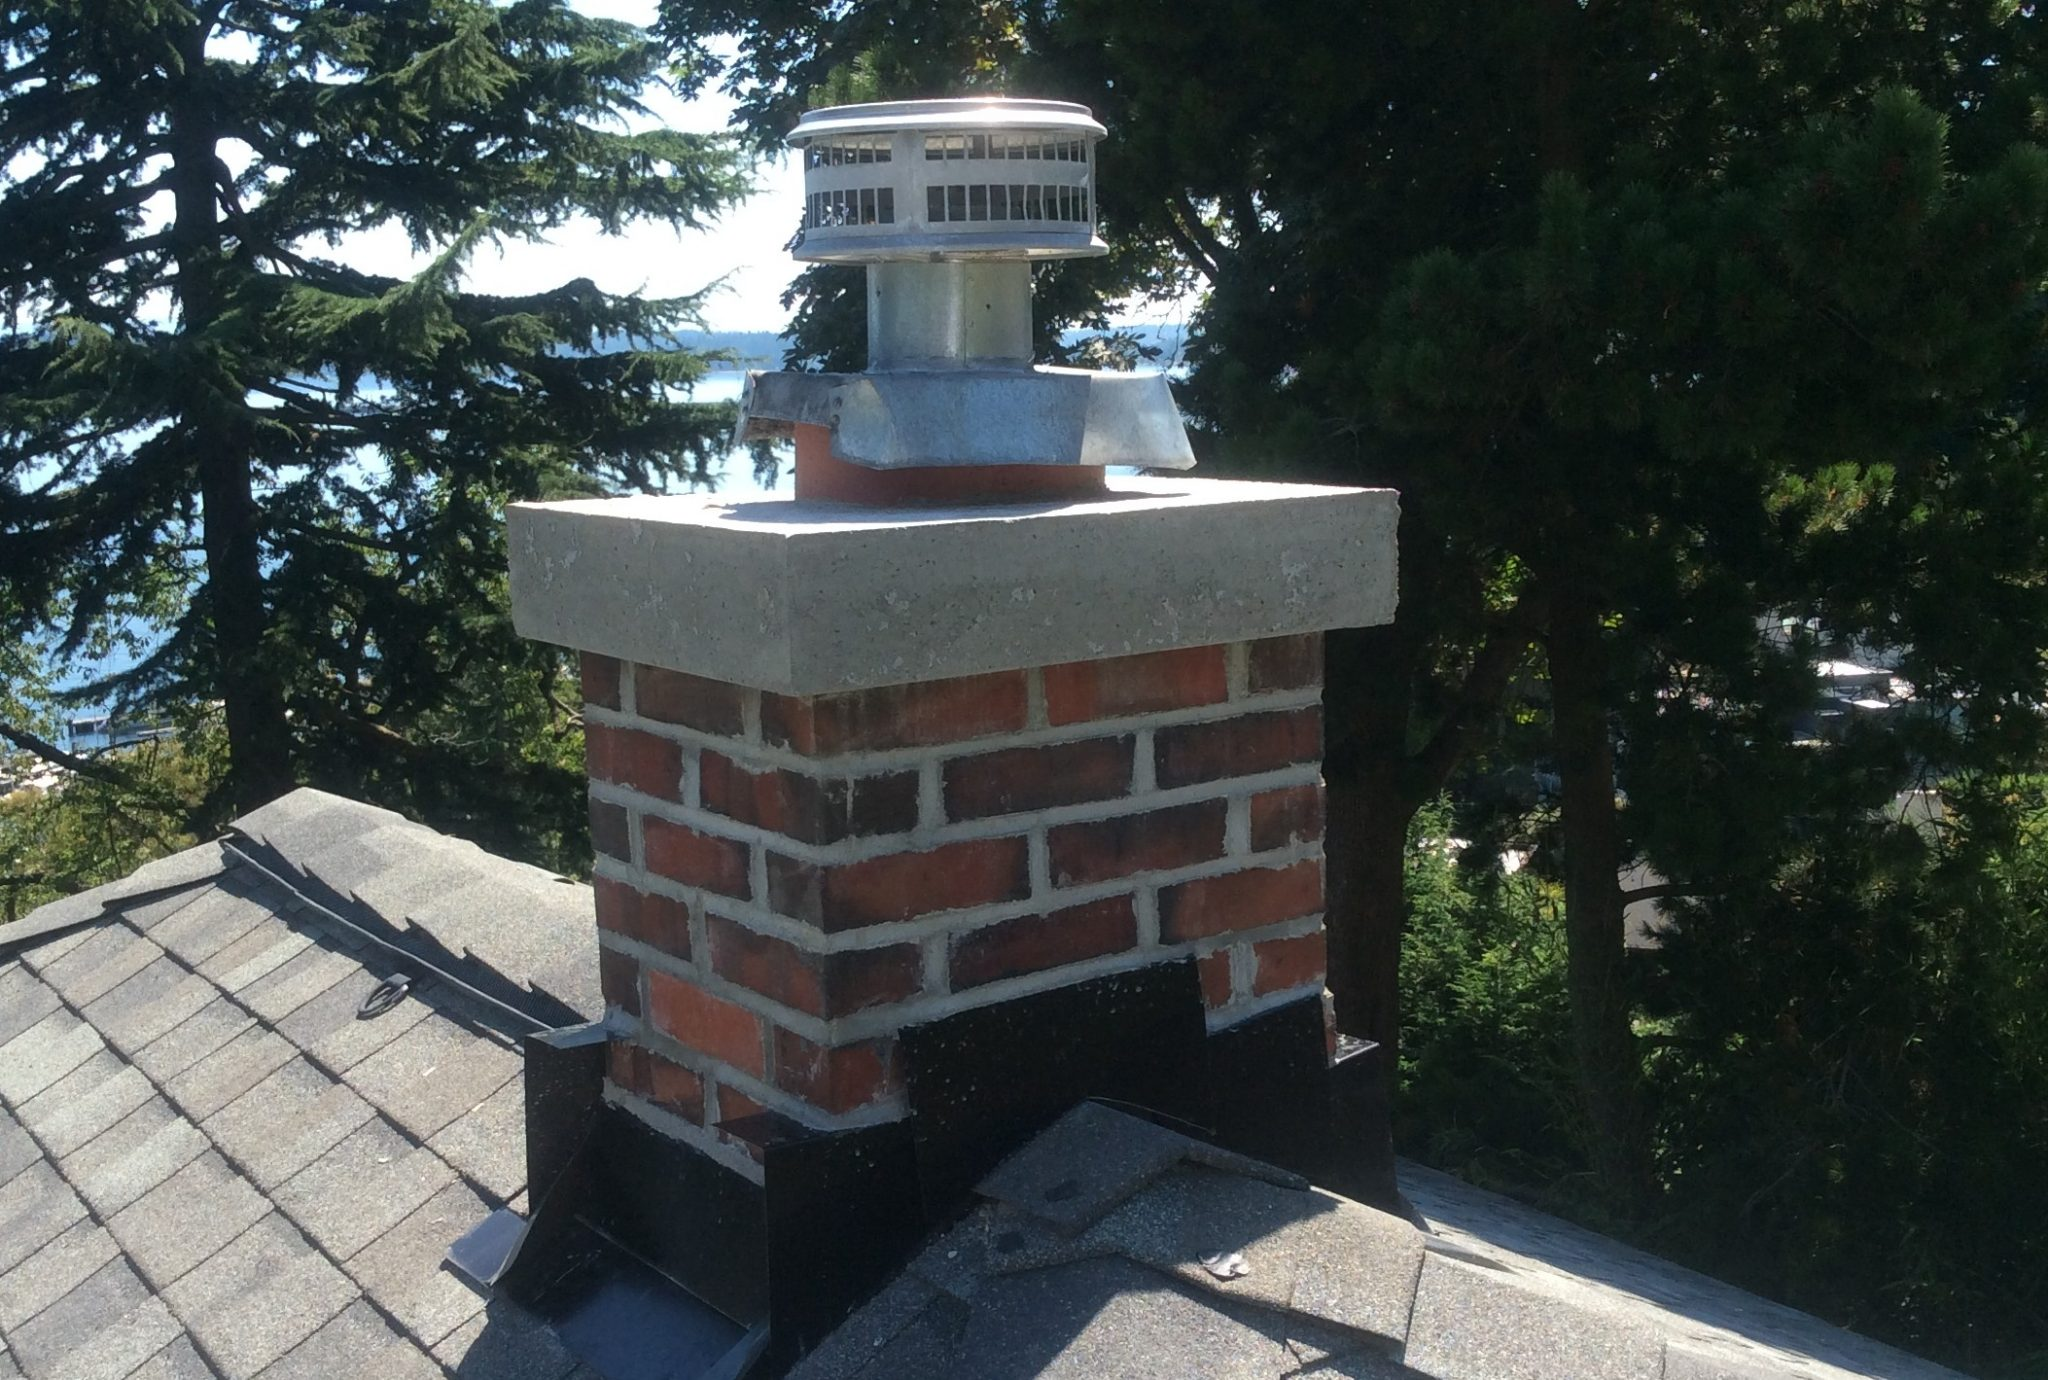 Seattle Chimney Project Pinnacle Roofing Professionals Llc